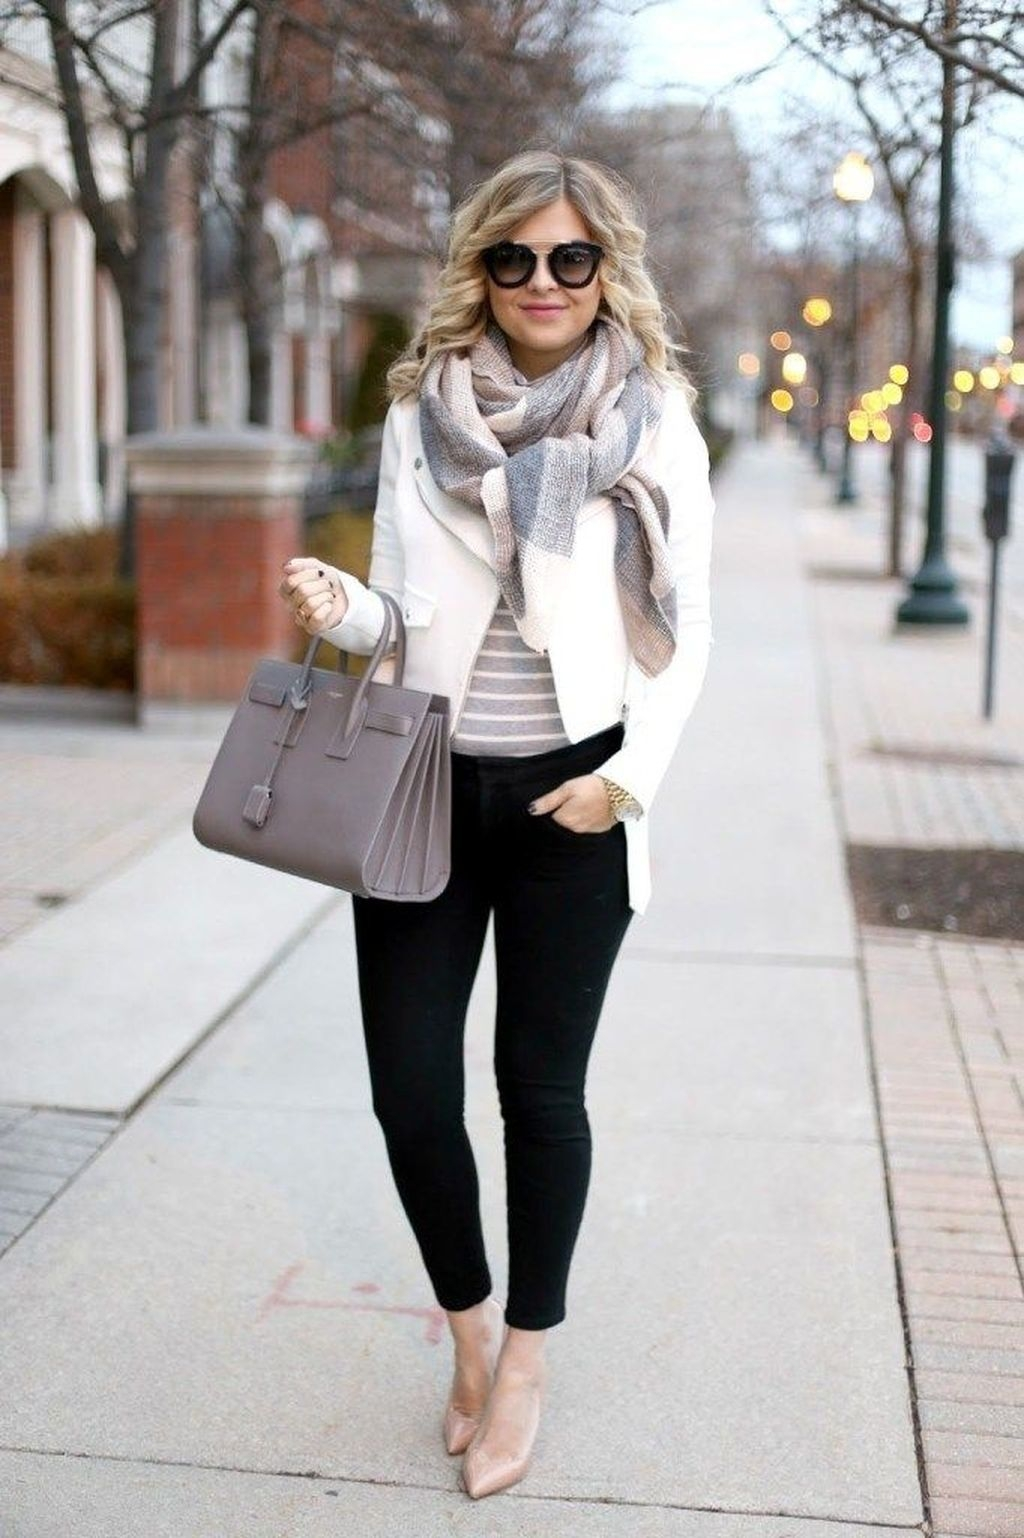 Greatest Outfits Ideas For Women27